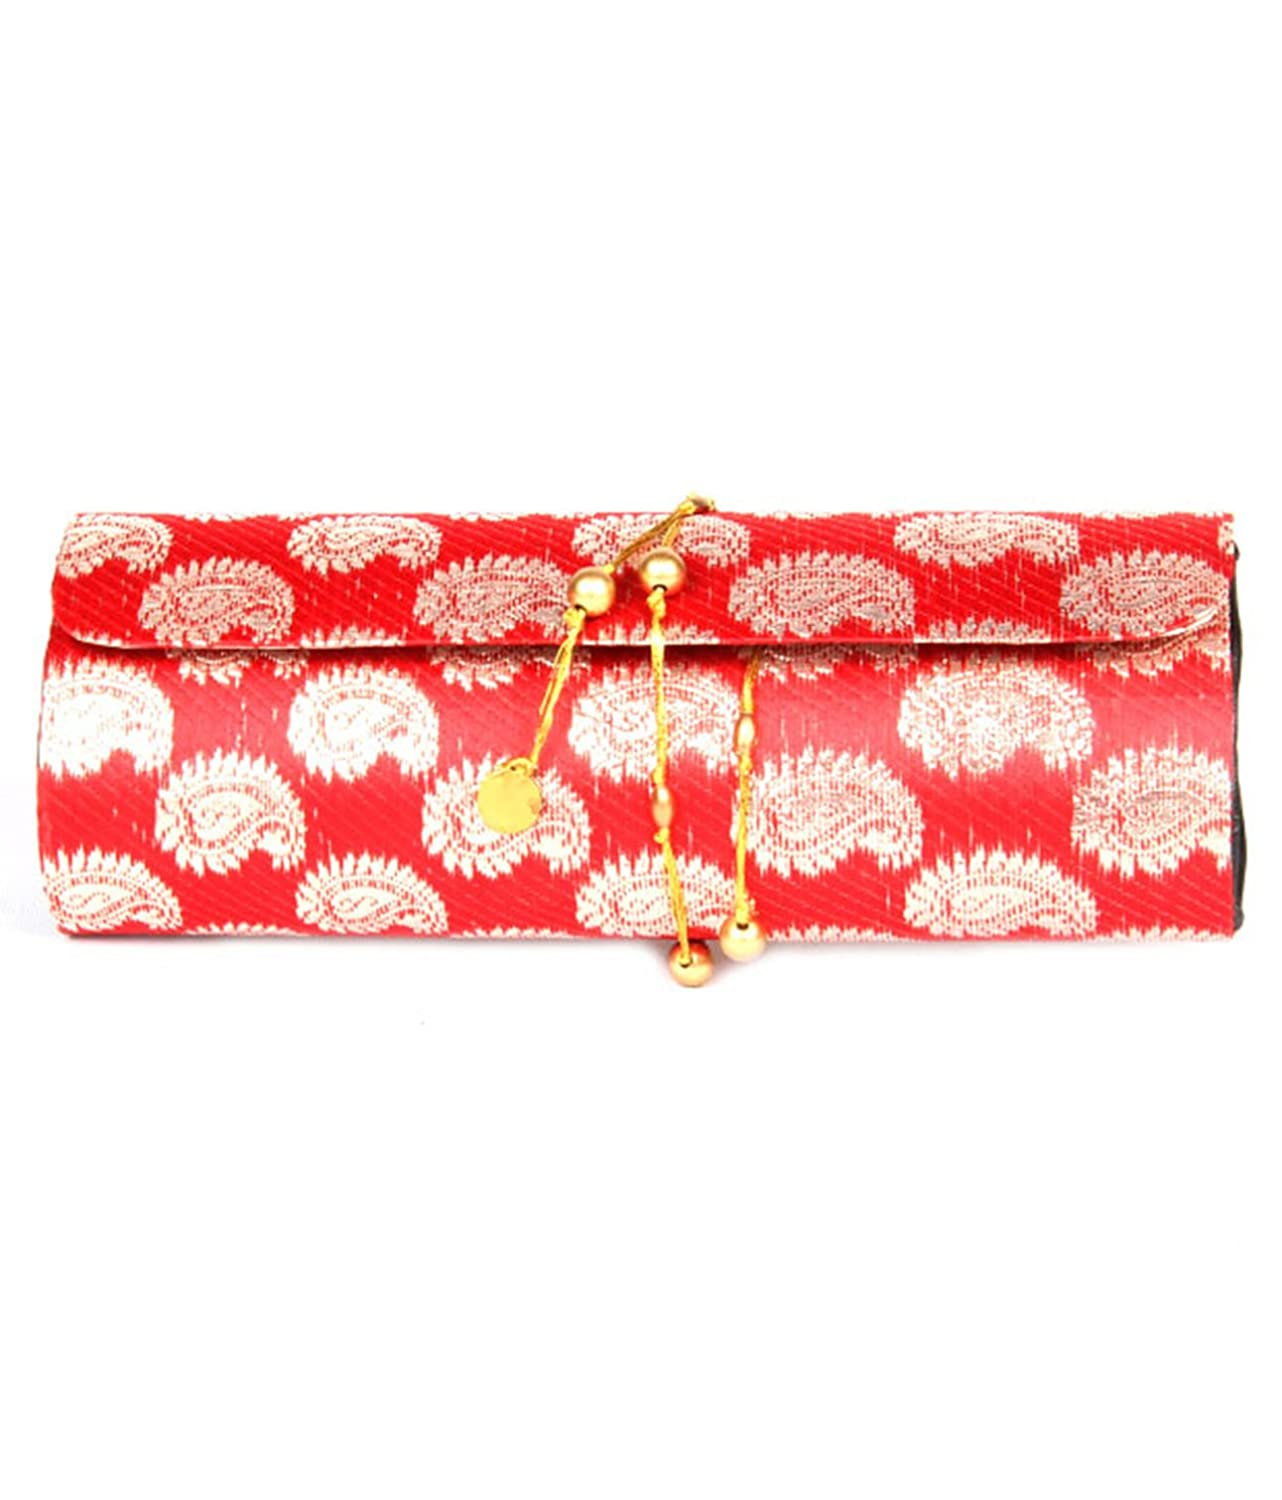 Favola dholak style silk brocade gold ambi with red base design clutch bag